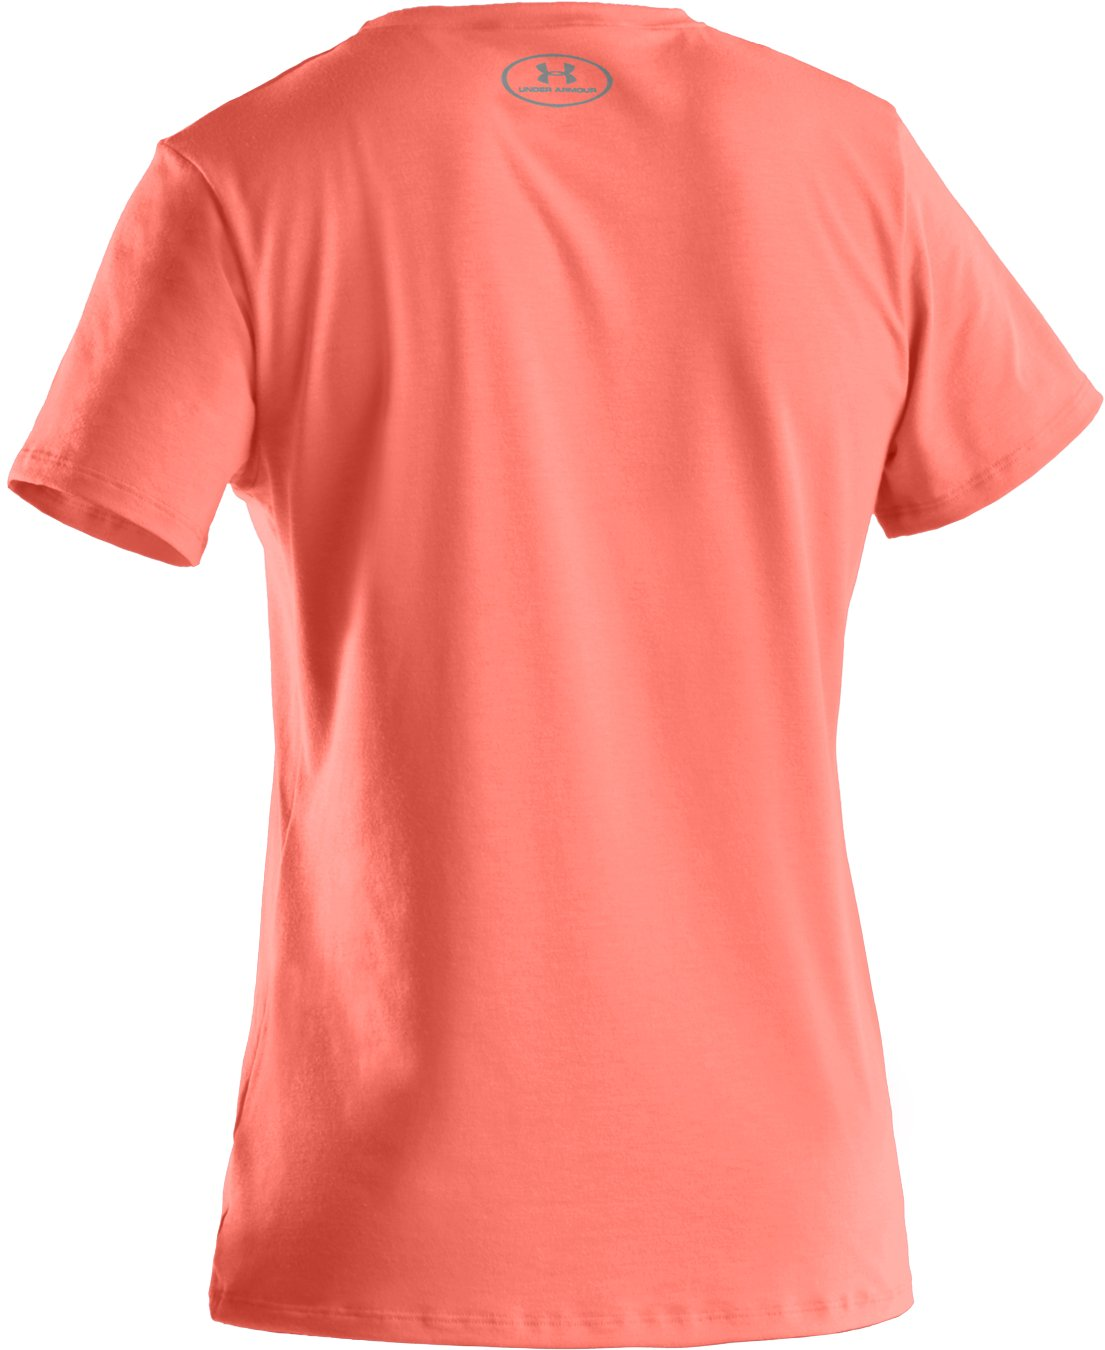 Girls' UA Big Logo Short Sleeve T-Shirt, ELECTRIC TANGERINE